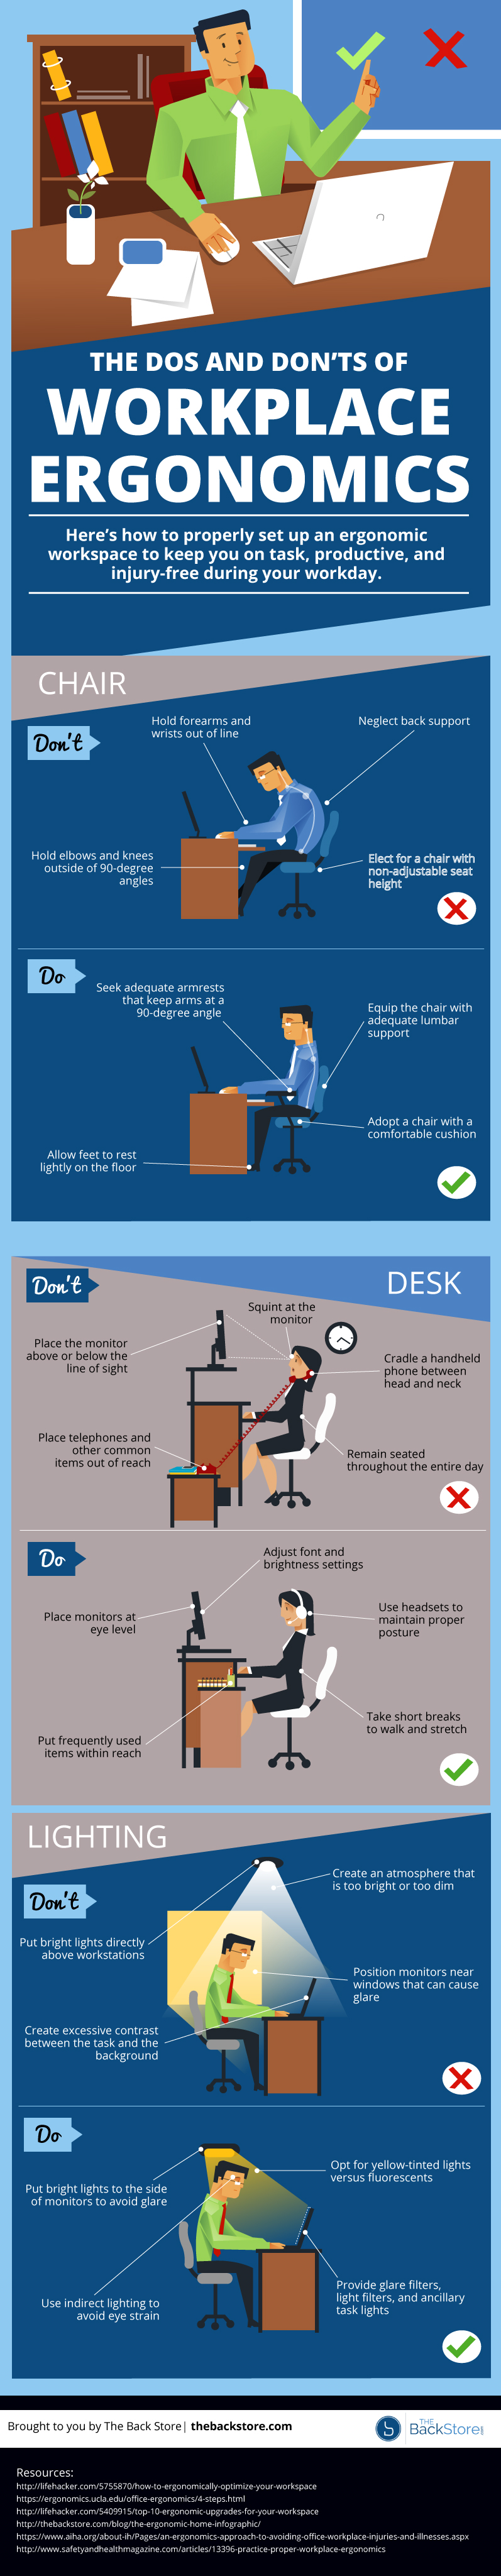 the dos and don ts of workplace ergonomics infographic blog. Black Bedroom Furniture Sets. Home Design Ideas